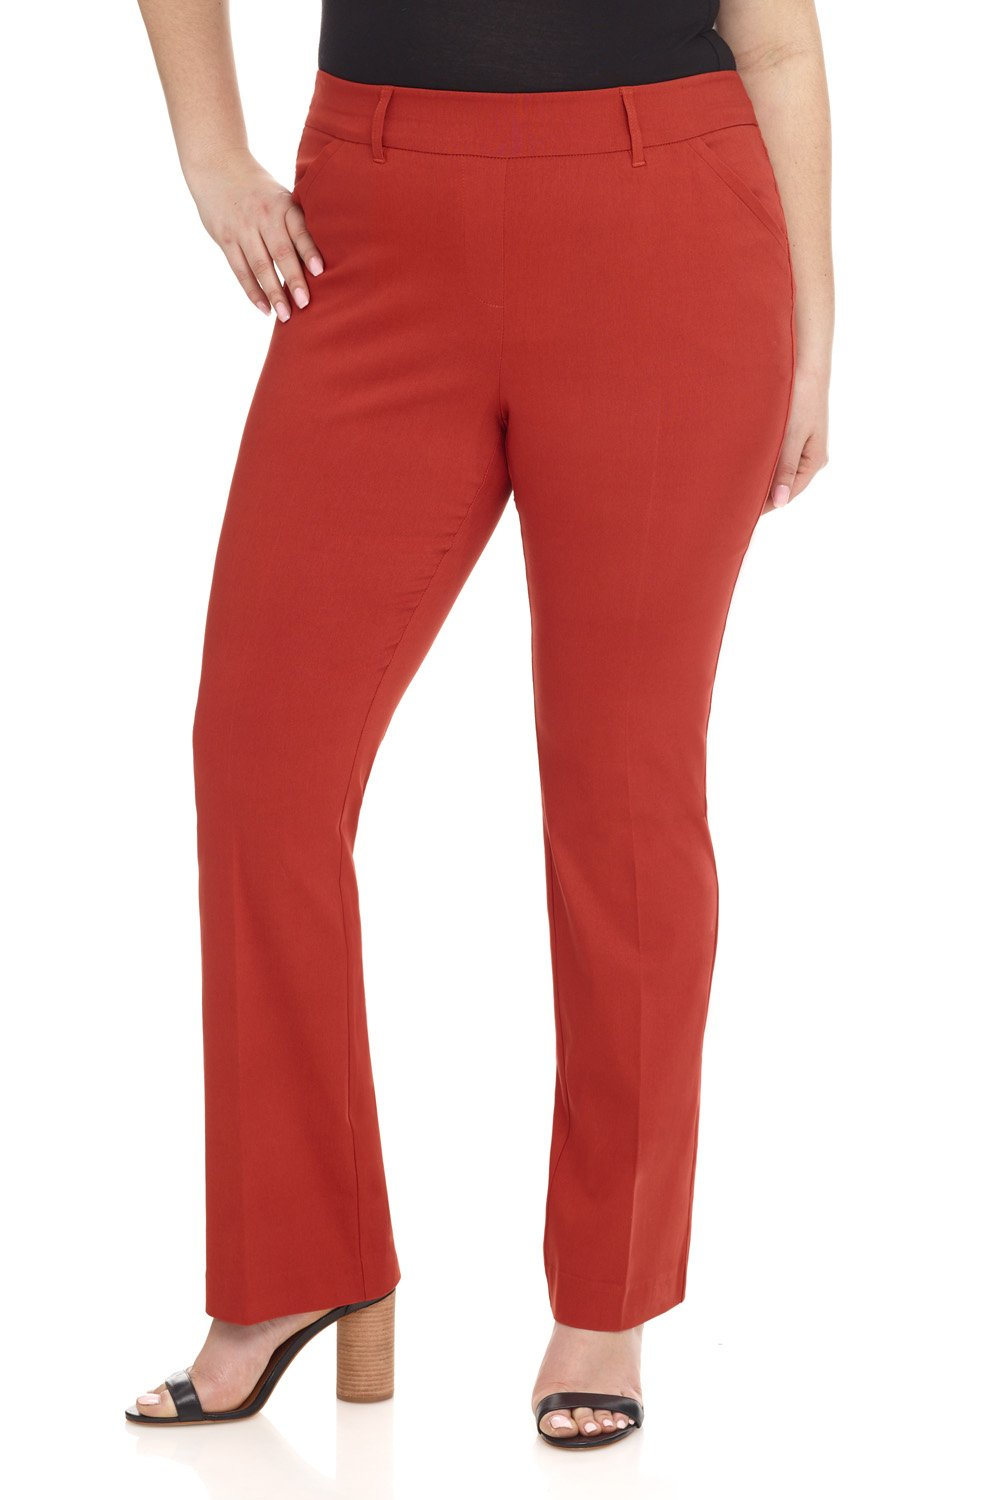 Rekucci Curvy Woman Ease in to Comfort Fit Barely Bootcut Plus Size Pant (20W,Rust)